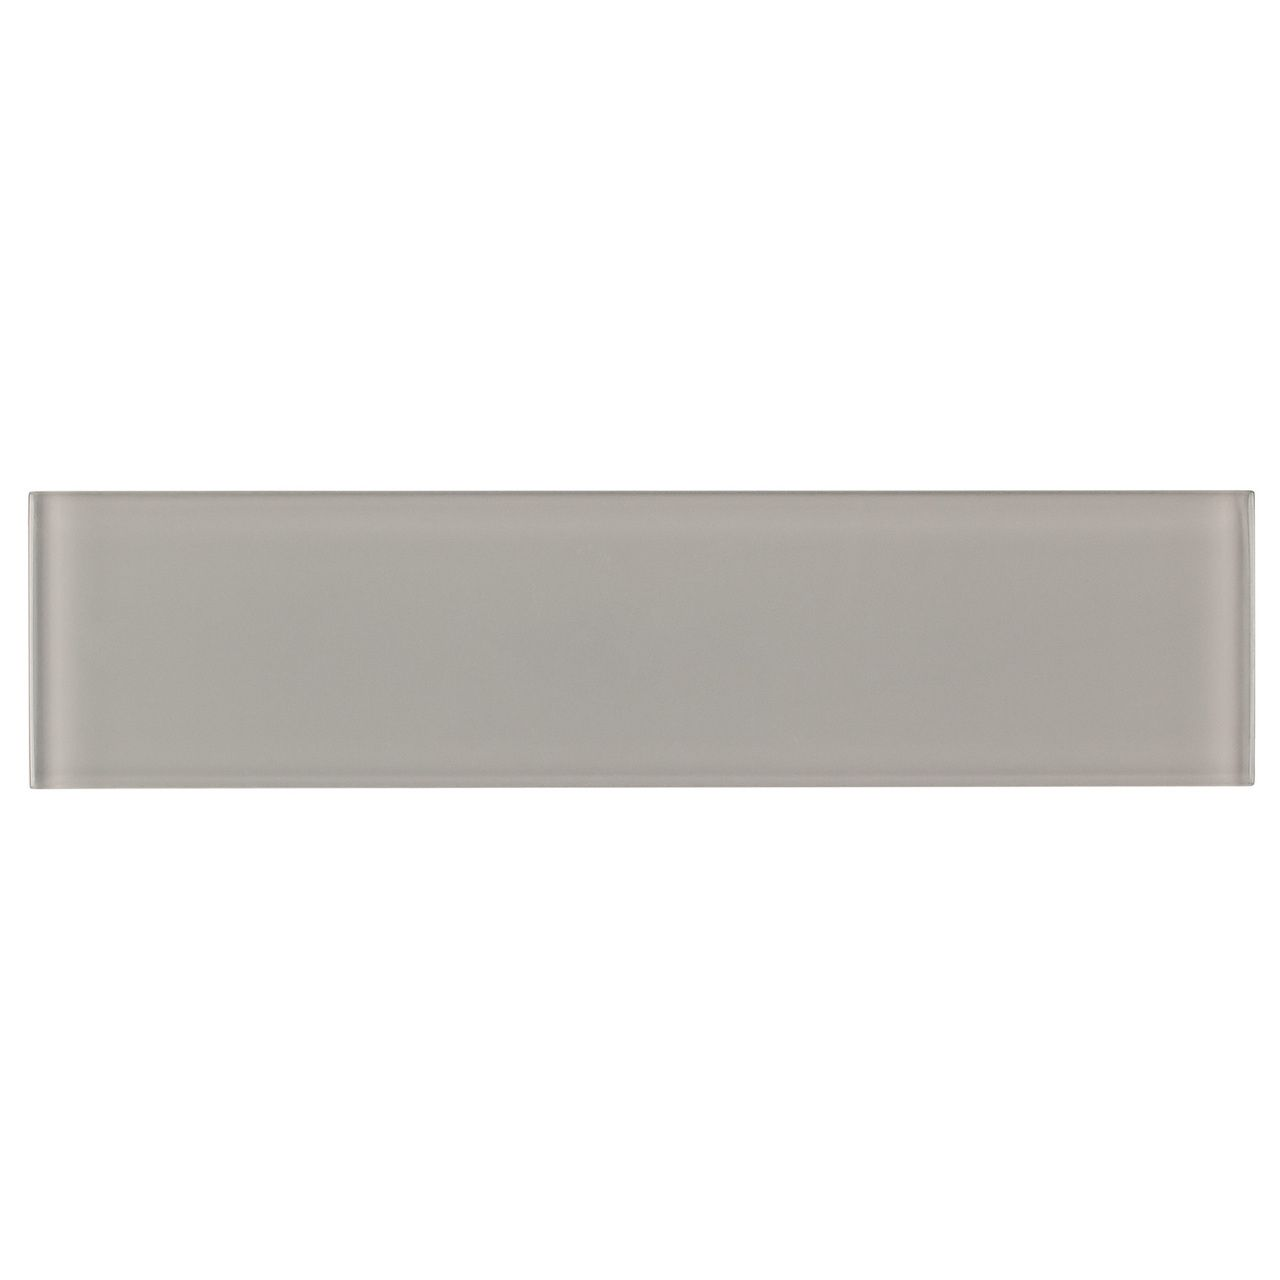 Glass Subway Tile French Gray 3x12 Glass Subway Tile